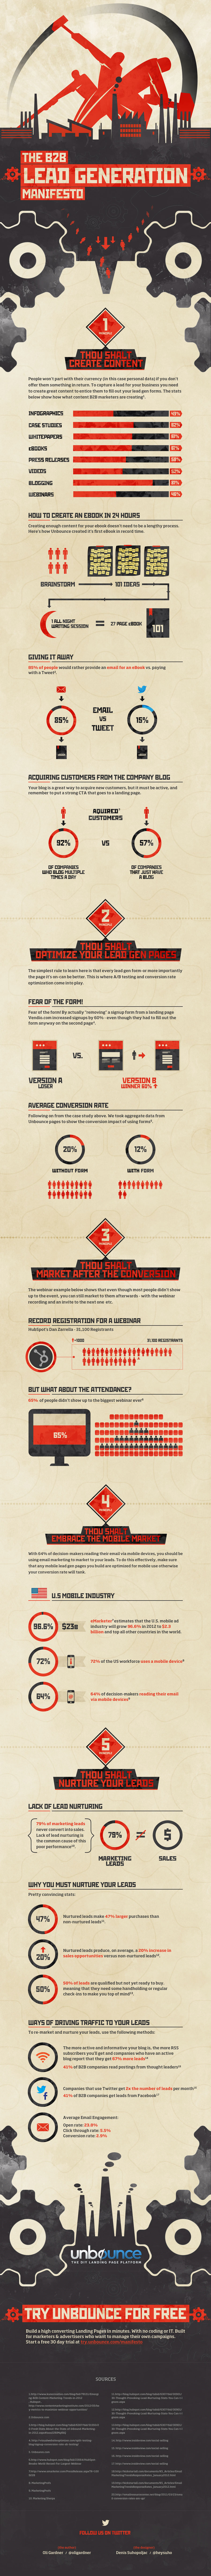 The B2B Lead Generation Manifesto Infographic